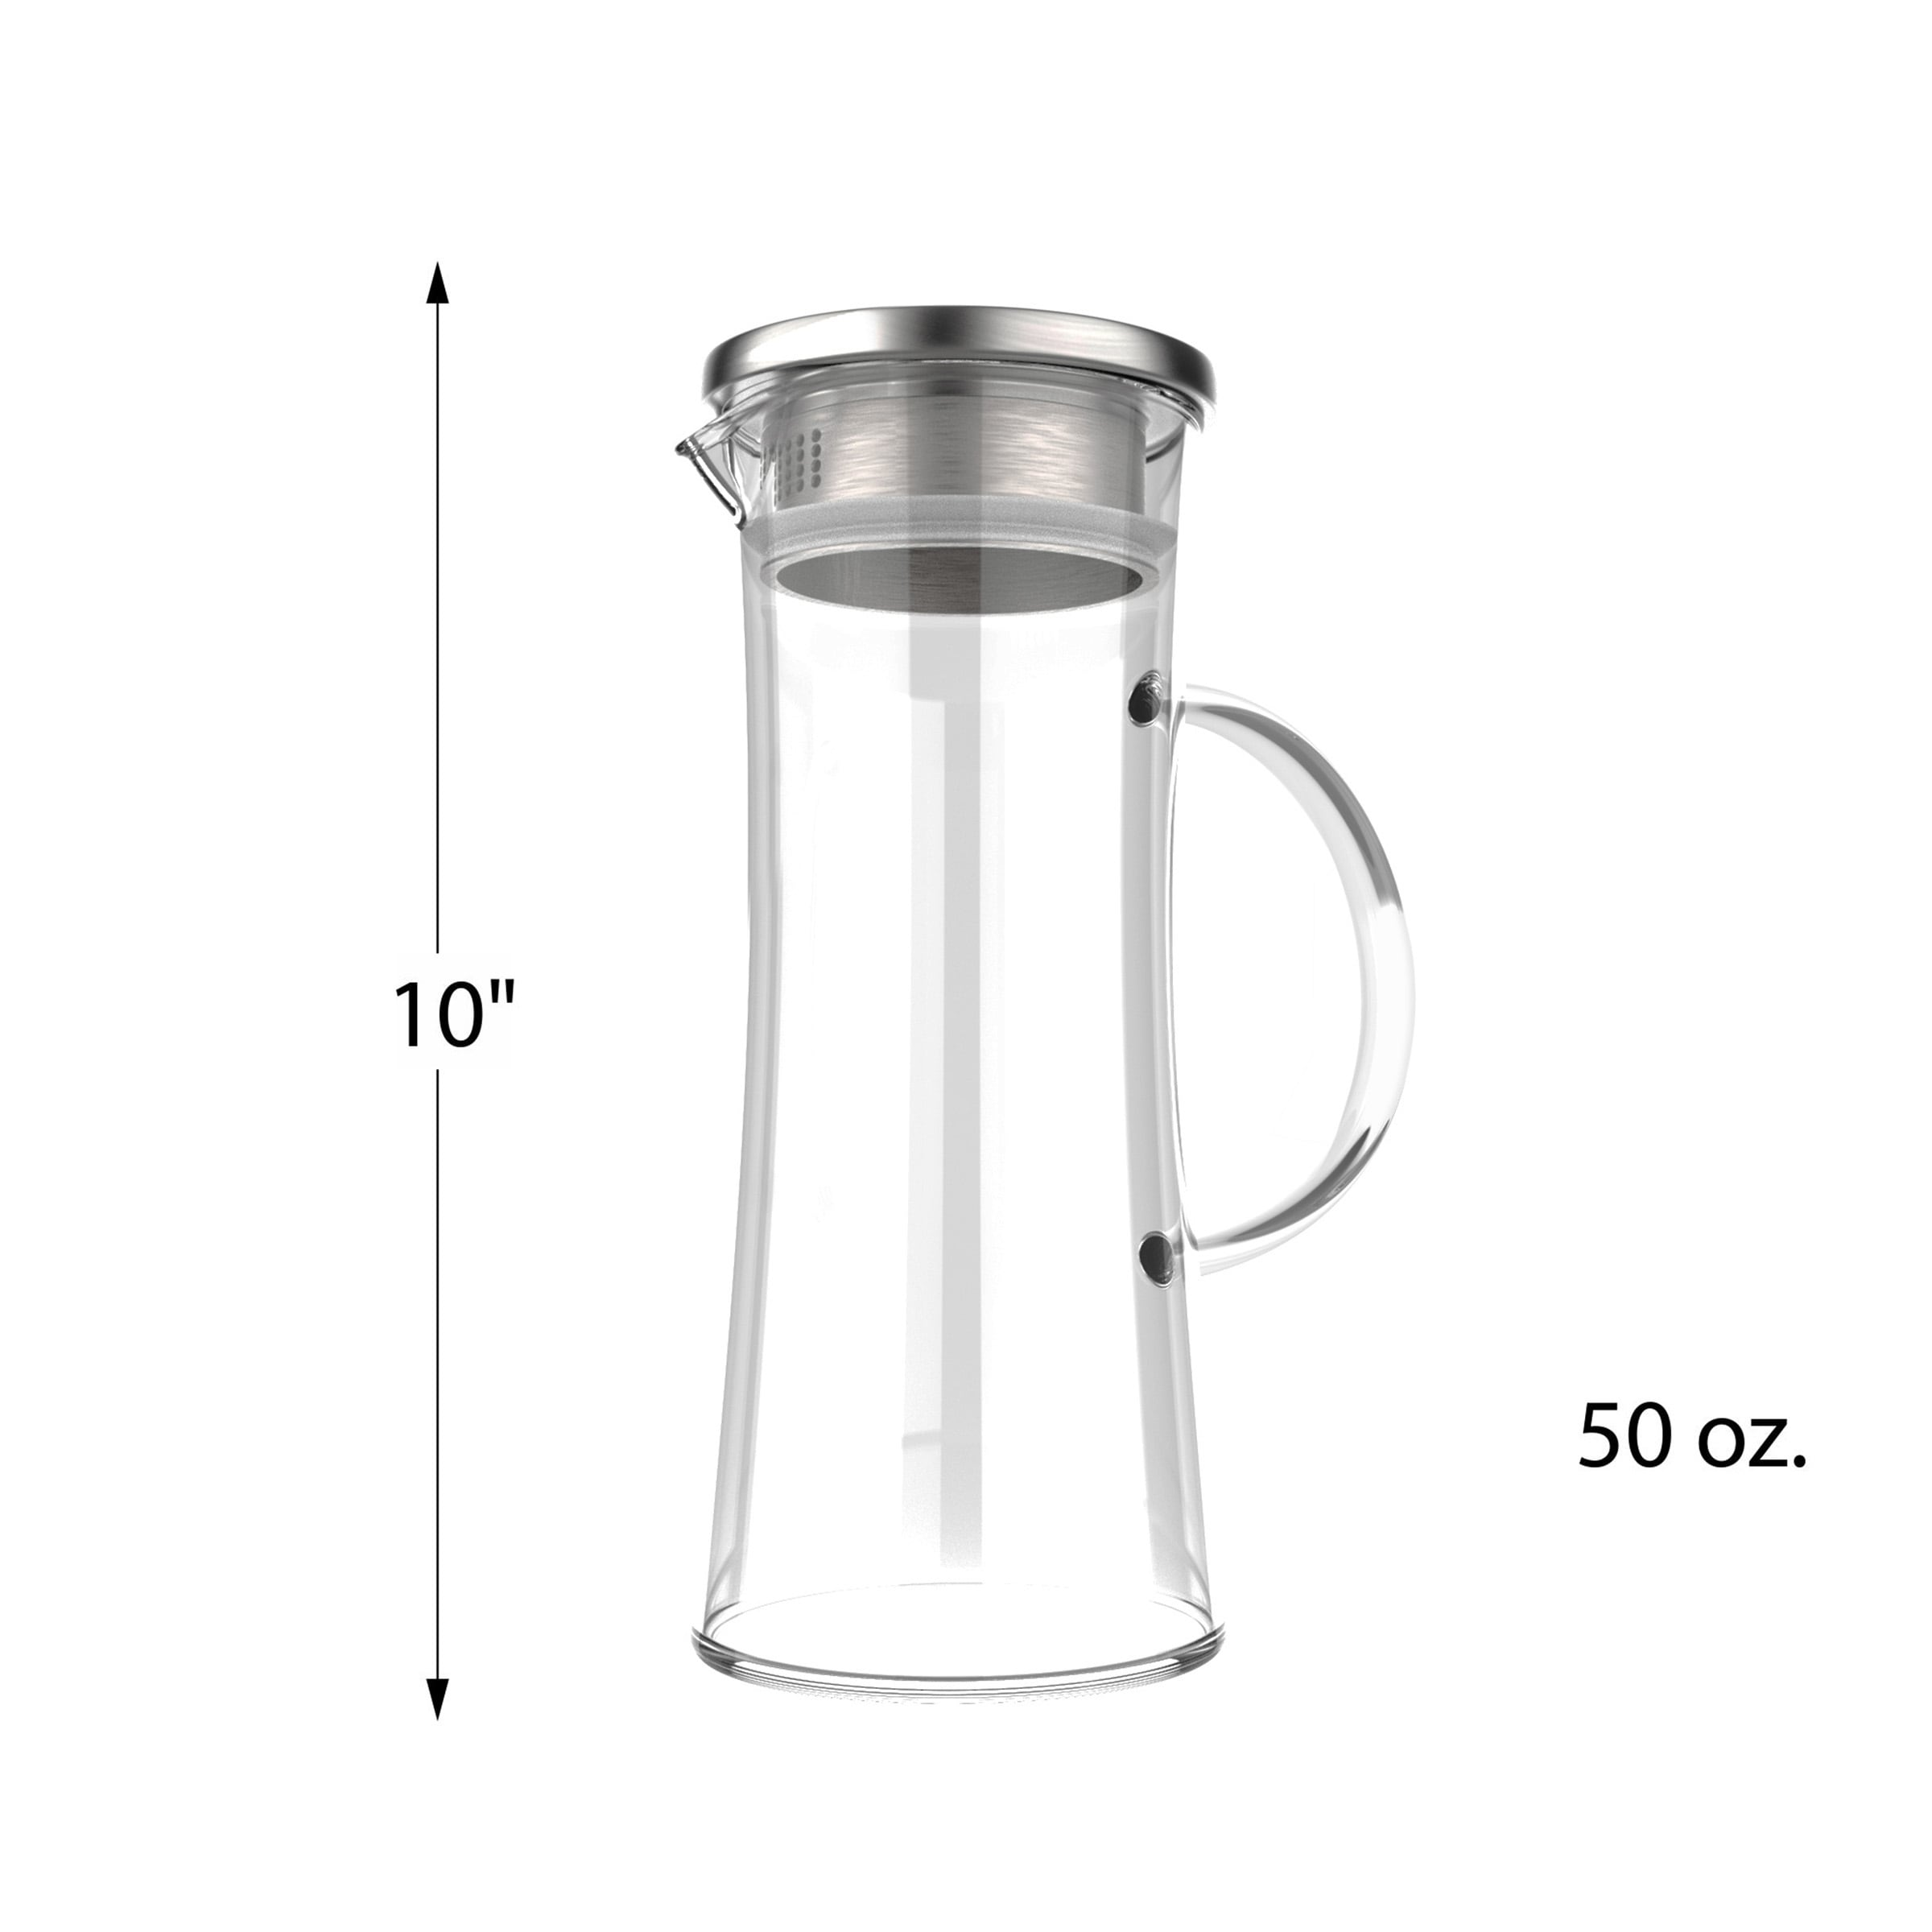 Heat Proof Pitcher Buy Drink Pitchers Online At Overstock Our Best